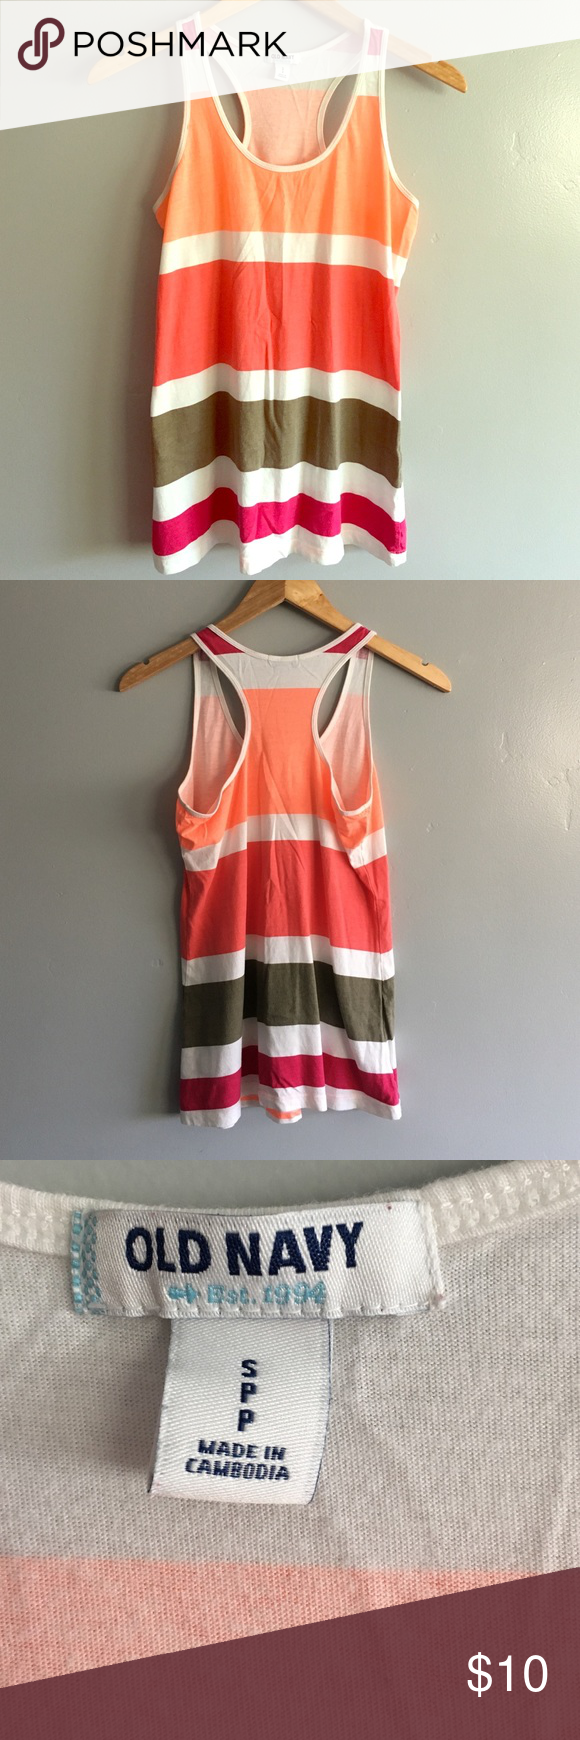 Old Navy Striped Tank In excellent condition! Super cute by itself or with a cardigan or Jean jacket. Old Navy Tops Tank Tops